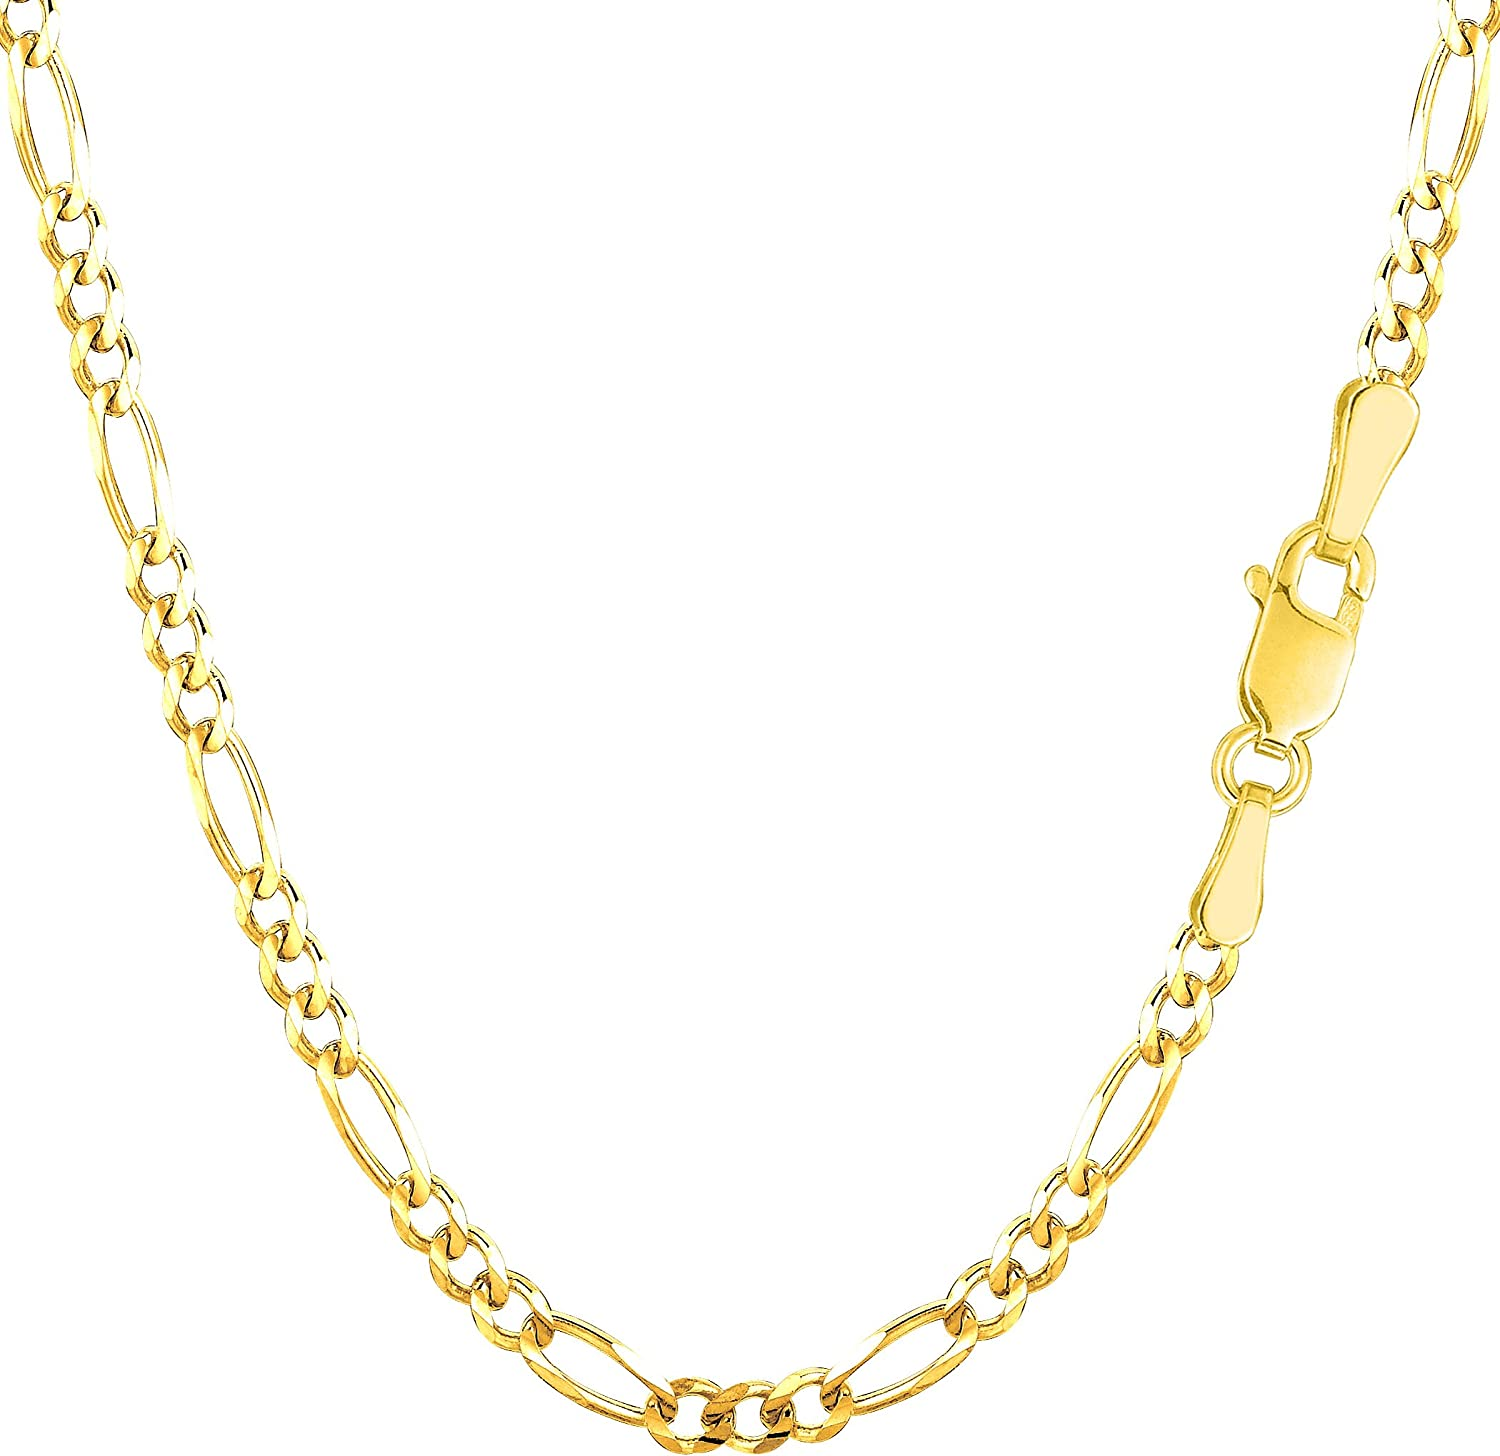 14k Yellow Solid Gold Figaro Chain Bracelet, 3.0mm